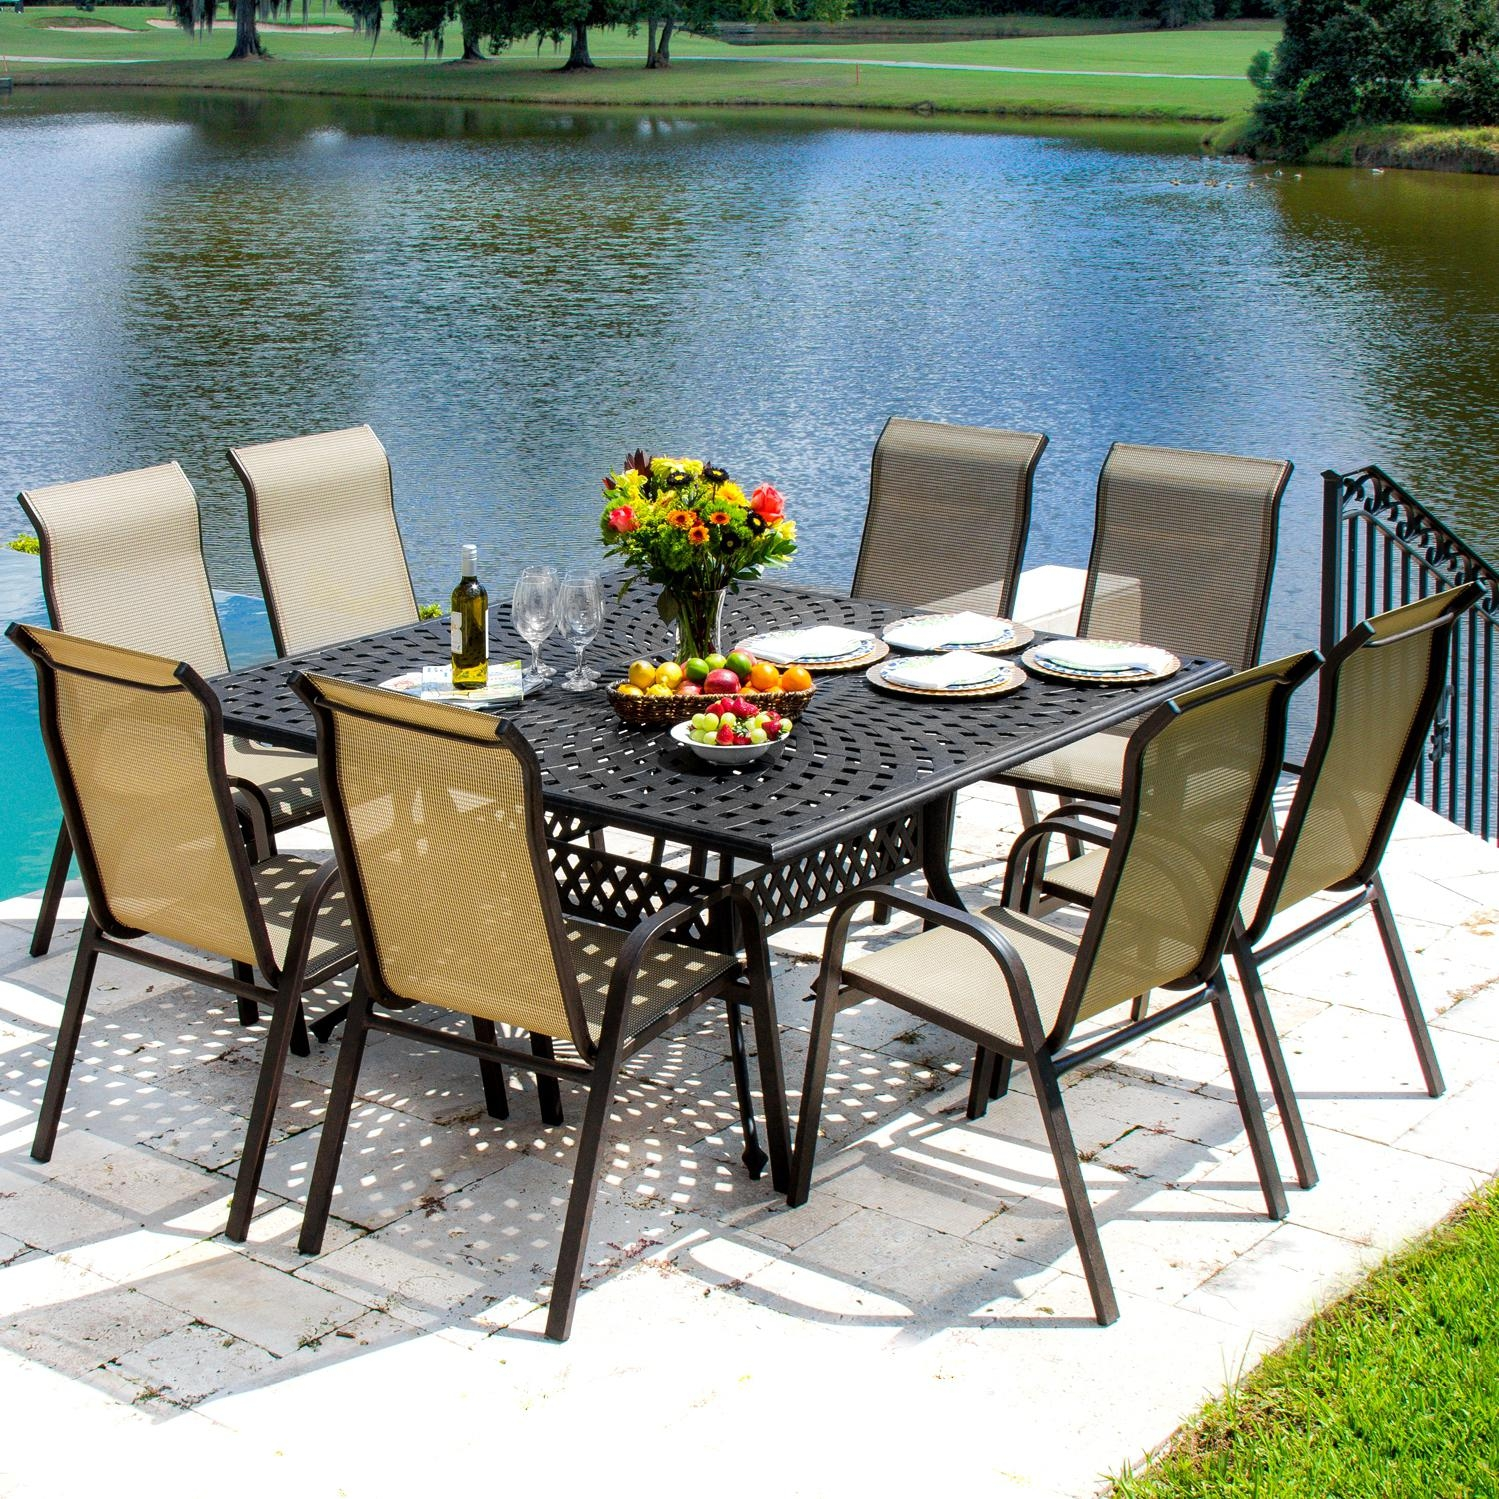 patio dining sets big lots furniture jcpenney 6 person set sears